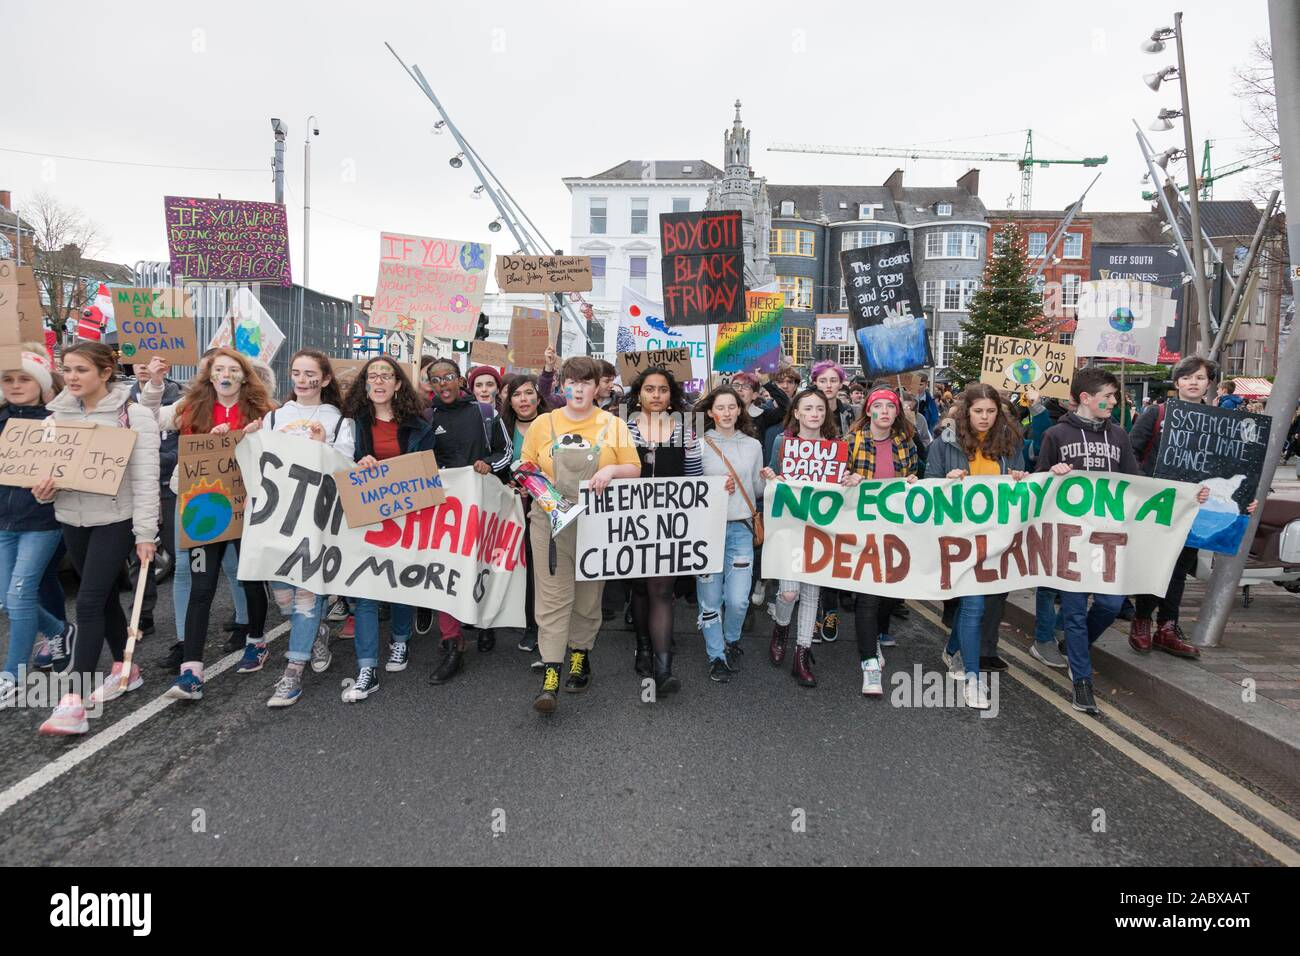 Cork City, Cork, Ireland. 29th Nov, 2019. Students taking part in the Global Climate Strike that was held in Cork City, Ireland.- Credit: David Creedon/Alamy Live News Stock Photo